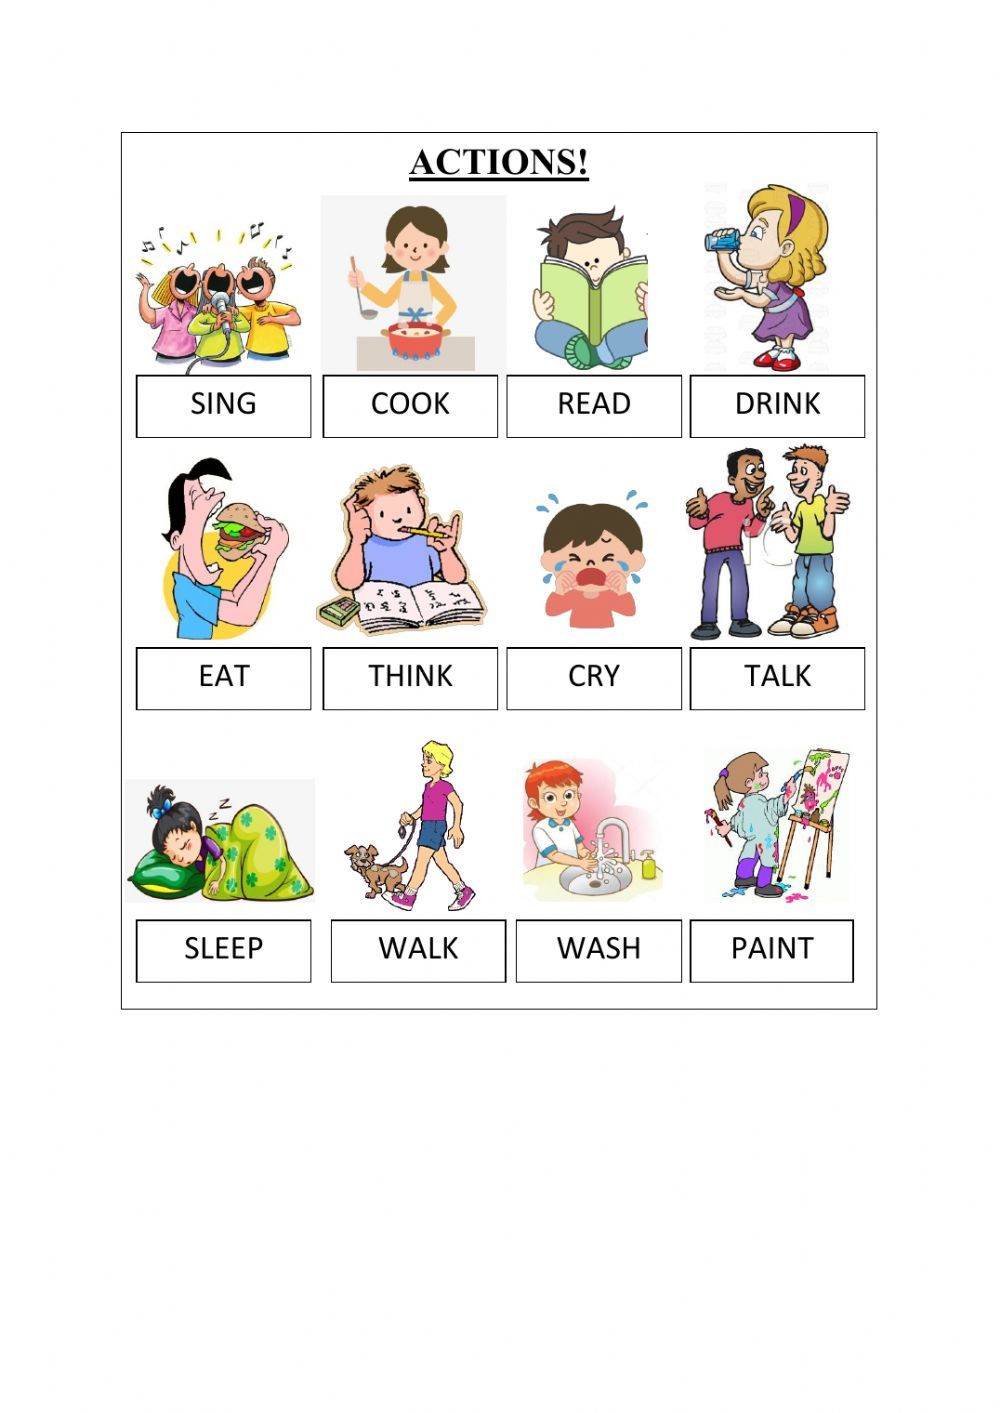 Pin By Milena Bogat On Miselne Games In 2021 Super Simple Songs School Activities English As A Second Language Esl [ 1413 x 1000 Pixel ]